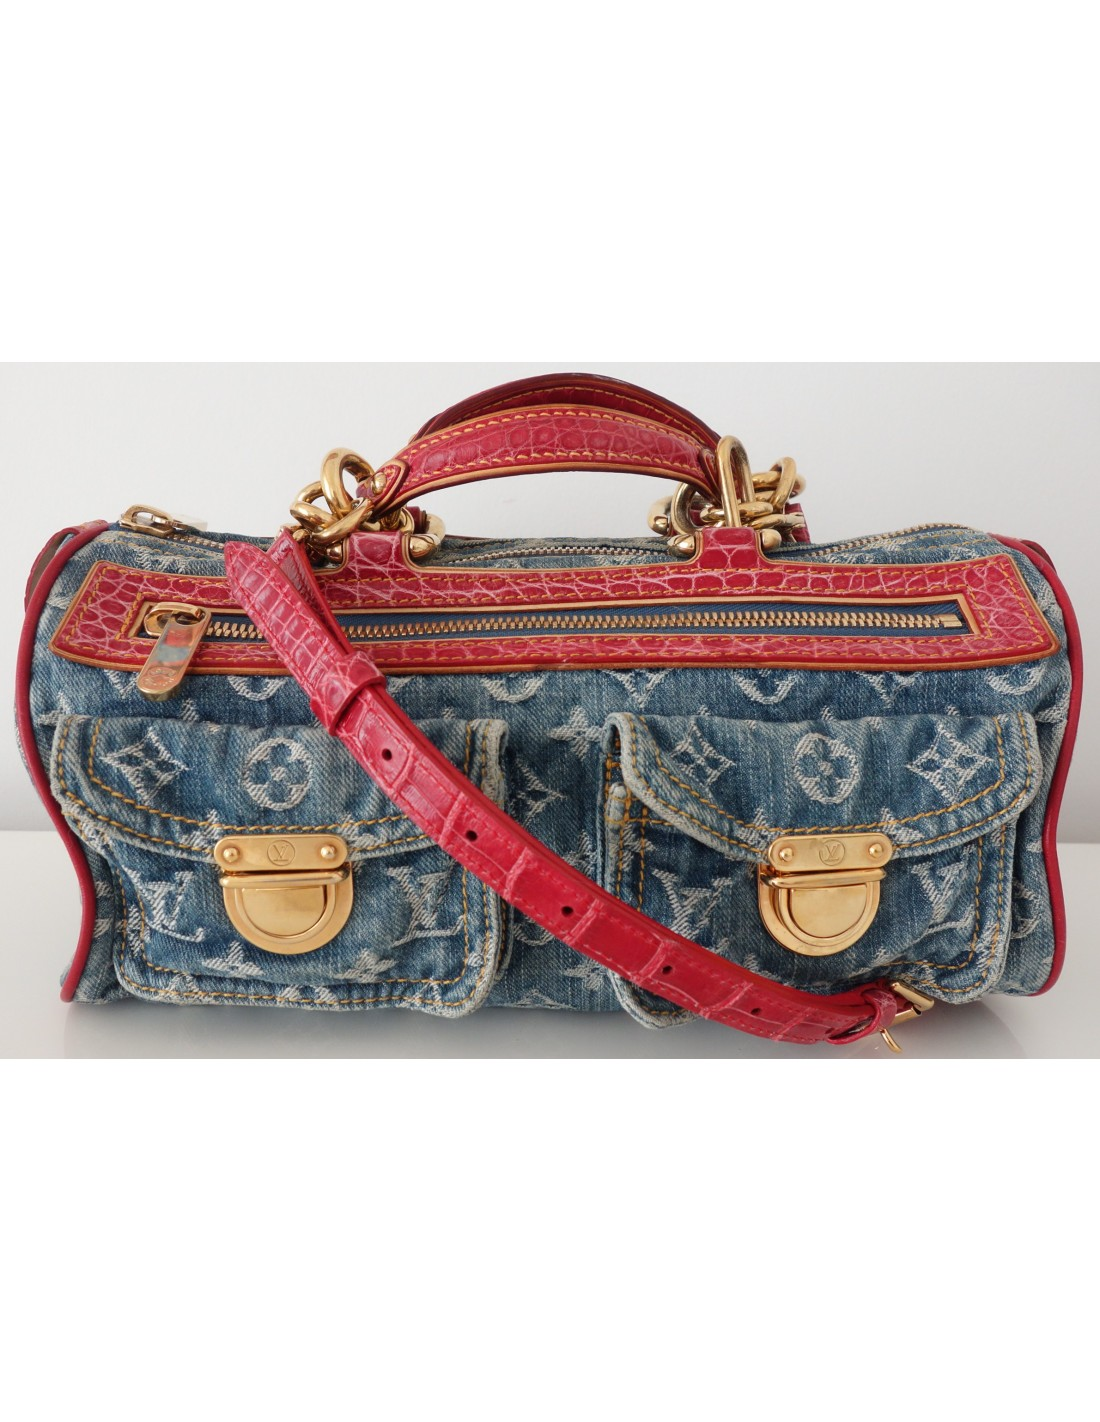 SAC NEO SPEEDY VUITTON JEAN ET CROCODILE - Atoutluxe Boutique 3468421aa42